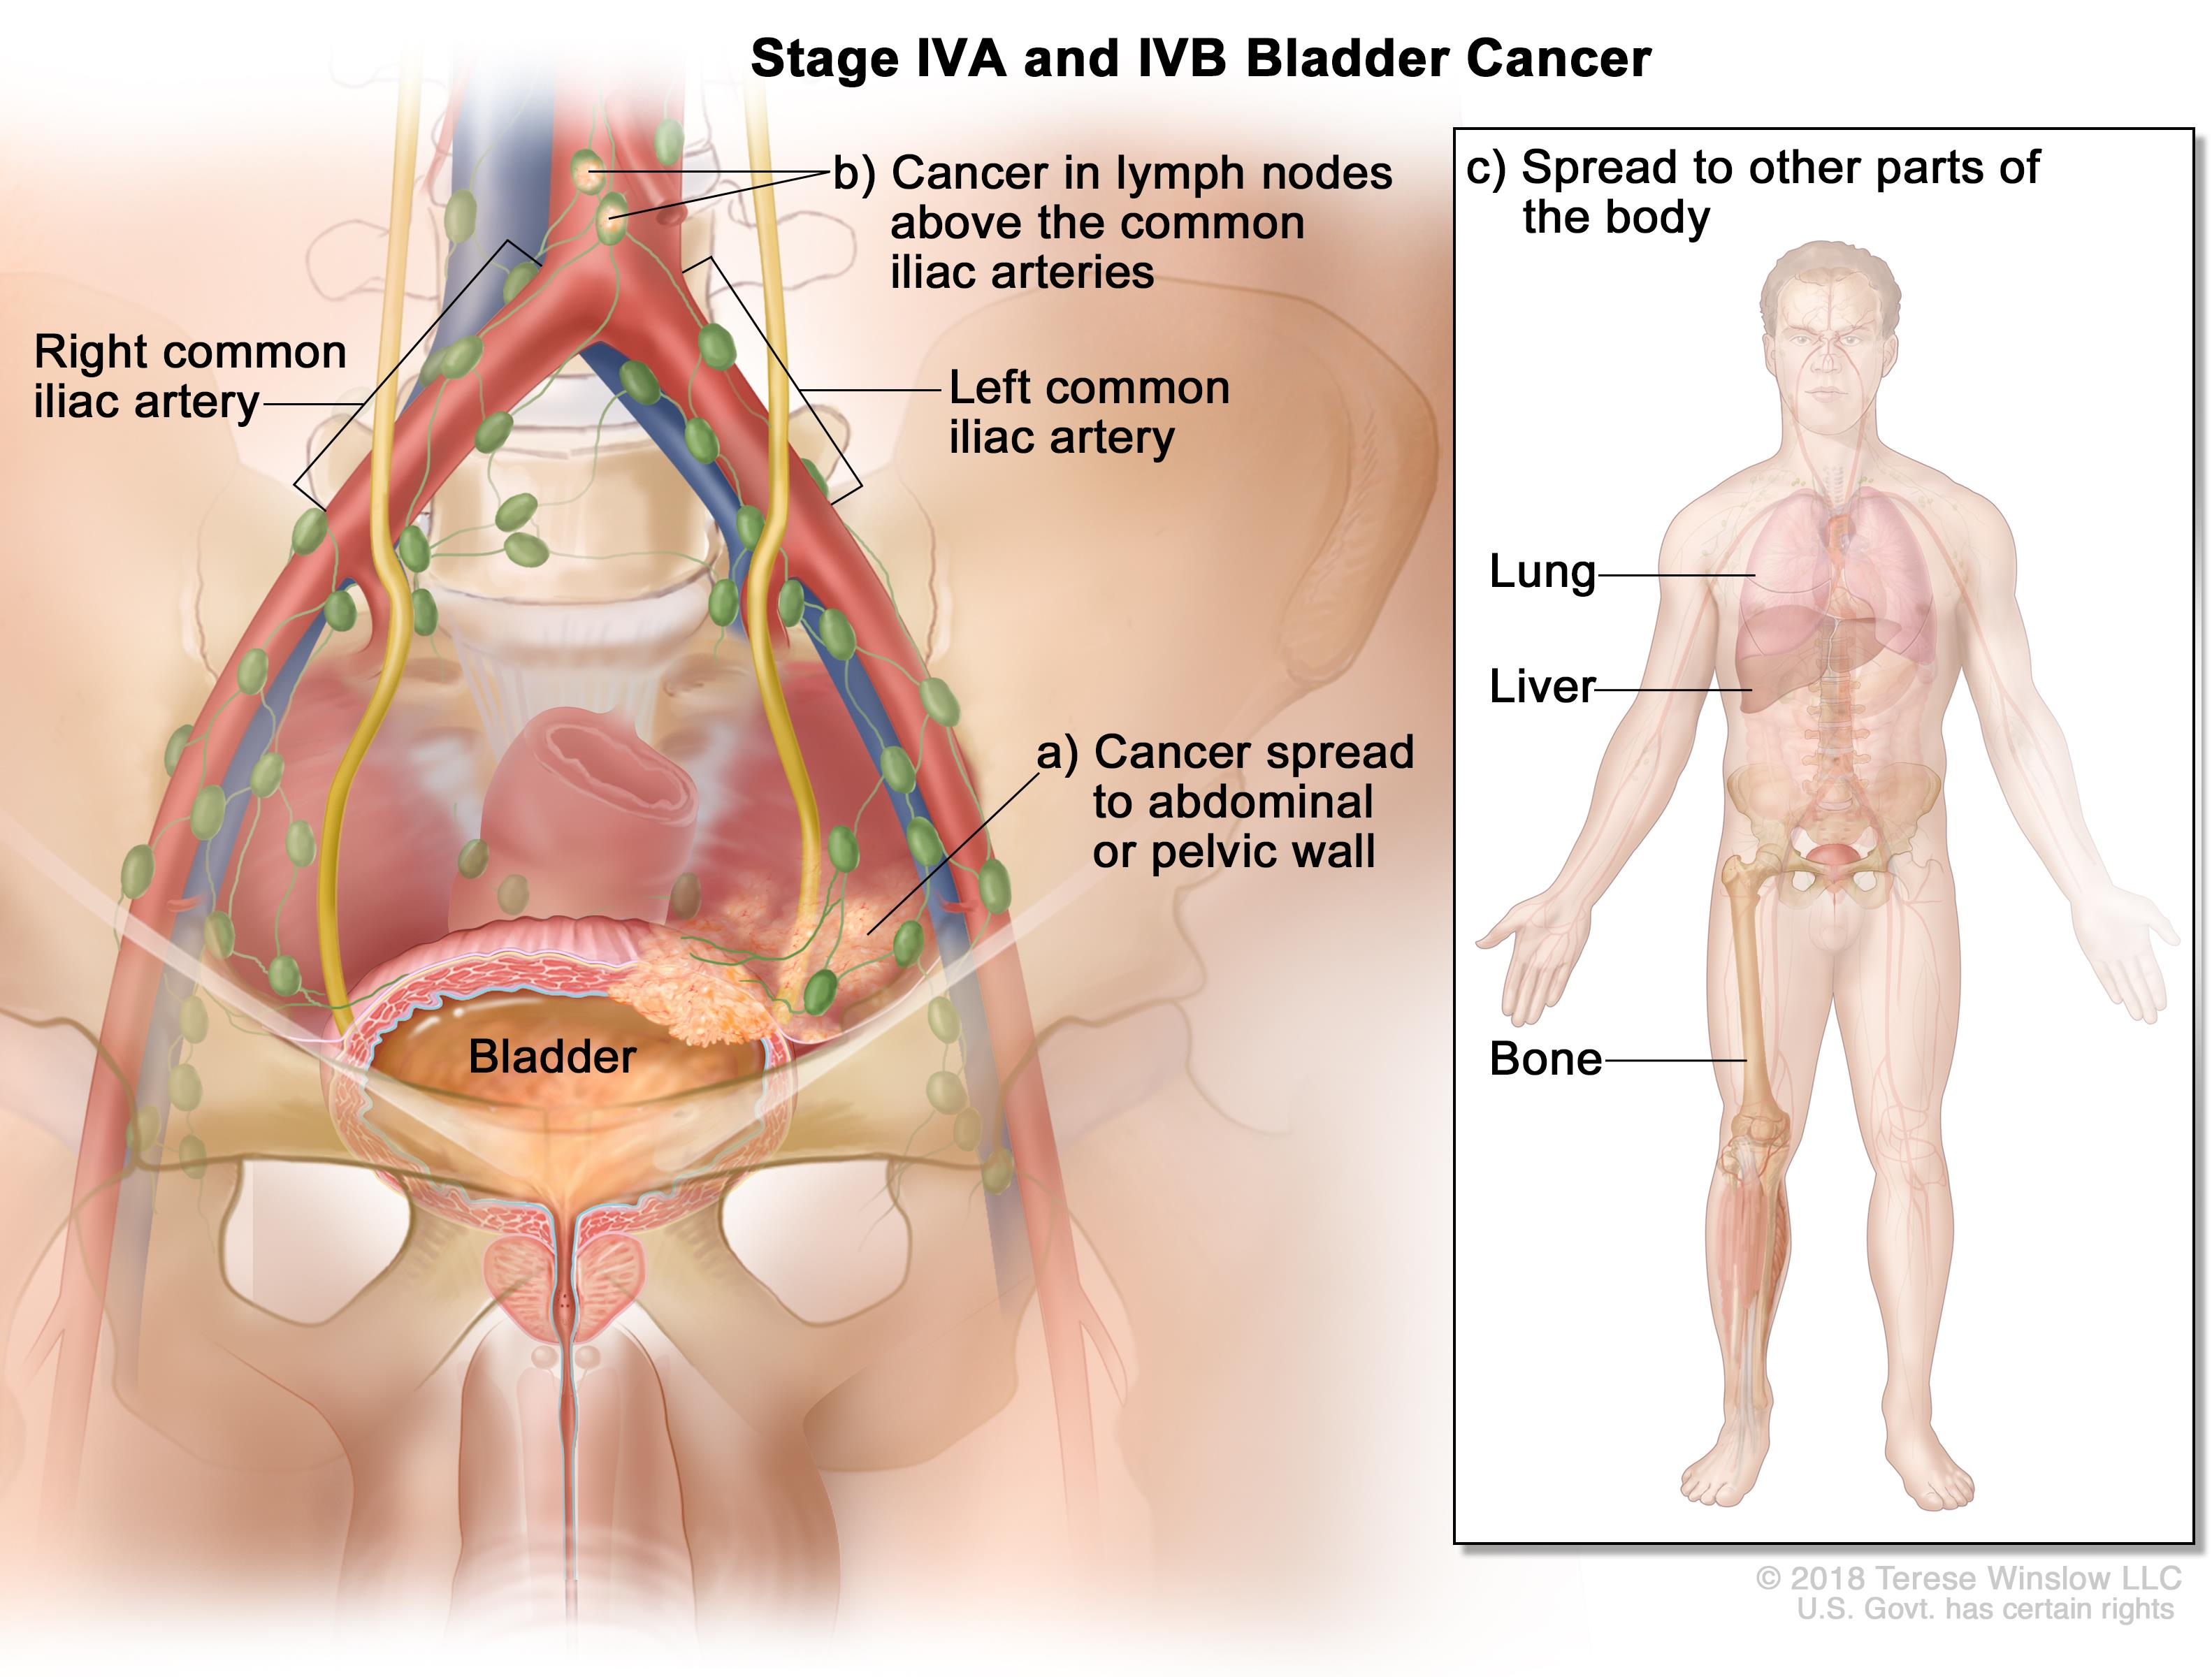 development of bladder cancer